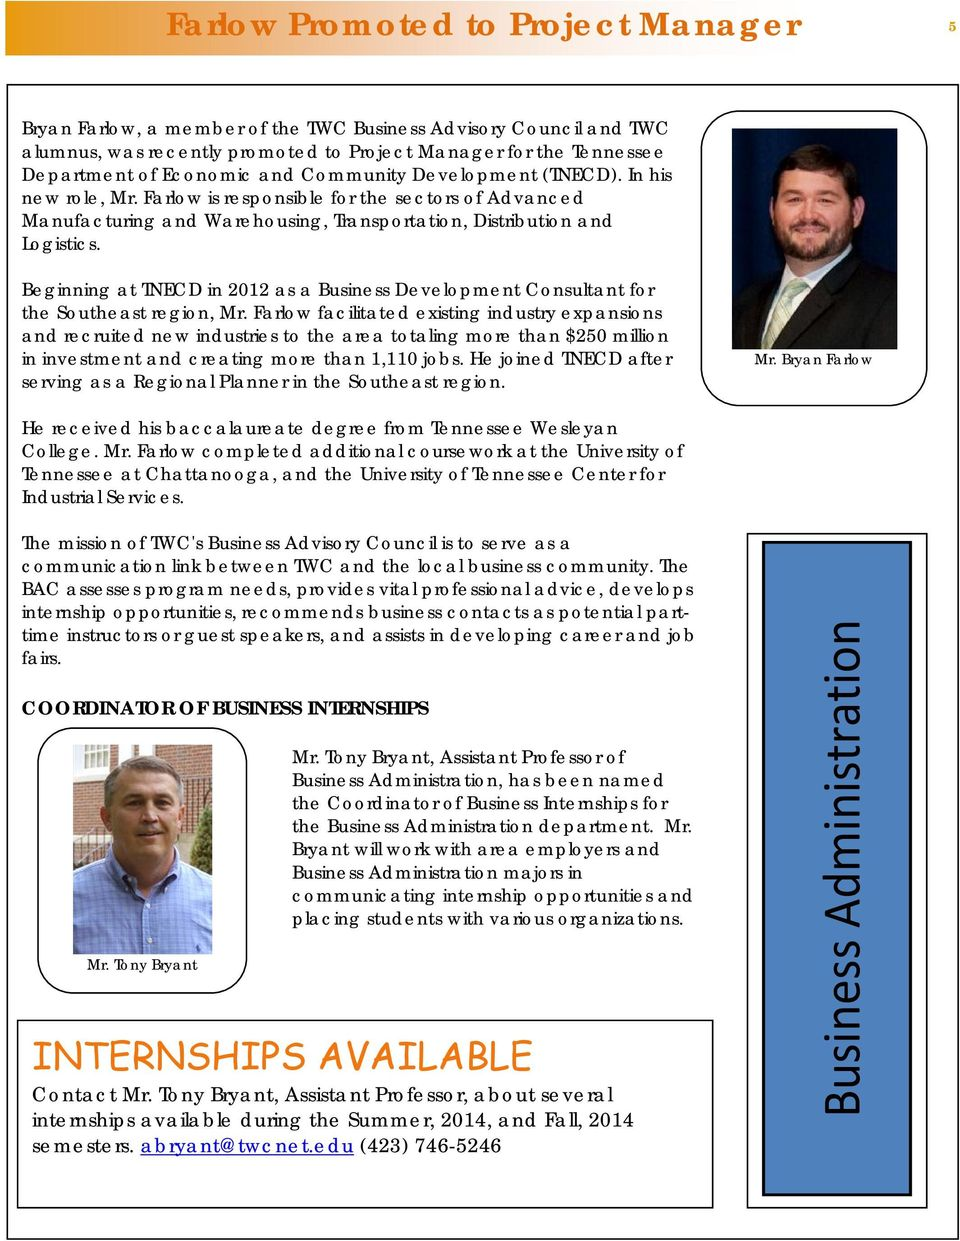 Beginning at TNECD in 2012 as a Business Development Consultant for the Southeast region, Mr.